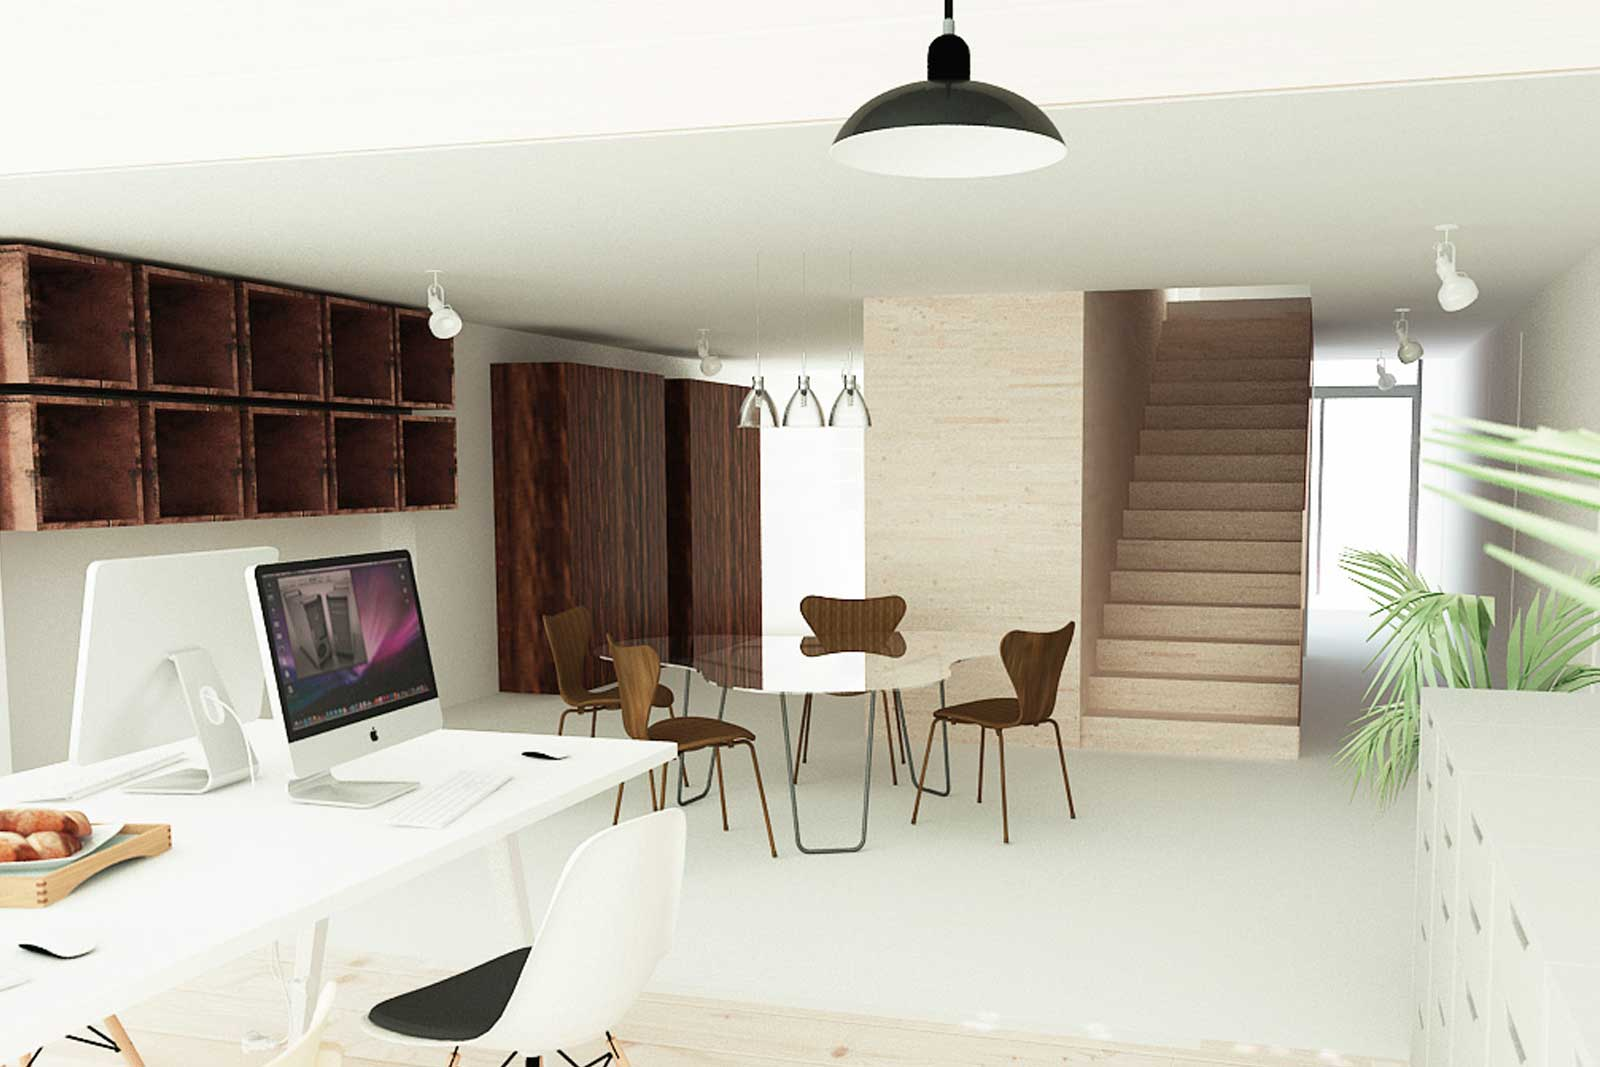 Mster De Diseo De Interiores IED Madrid IED Master